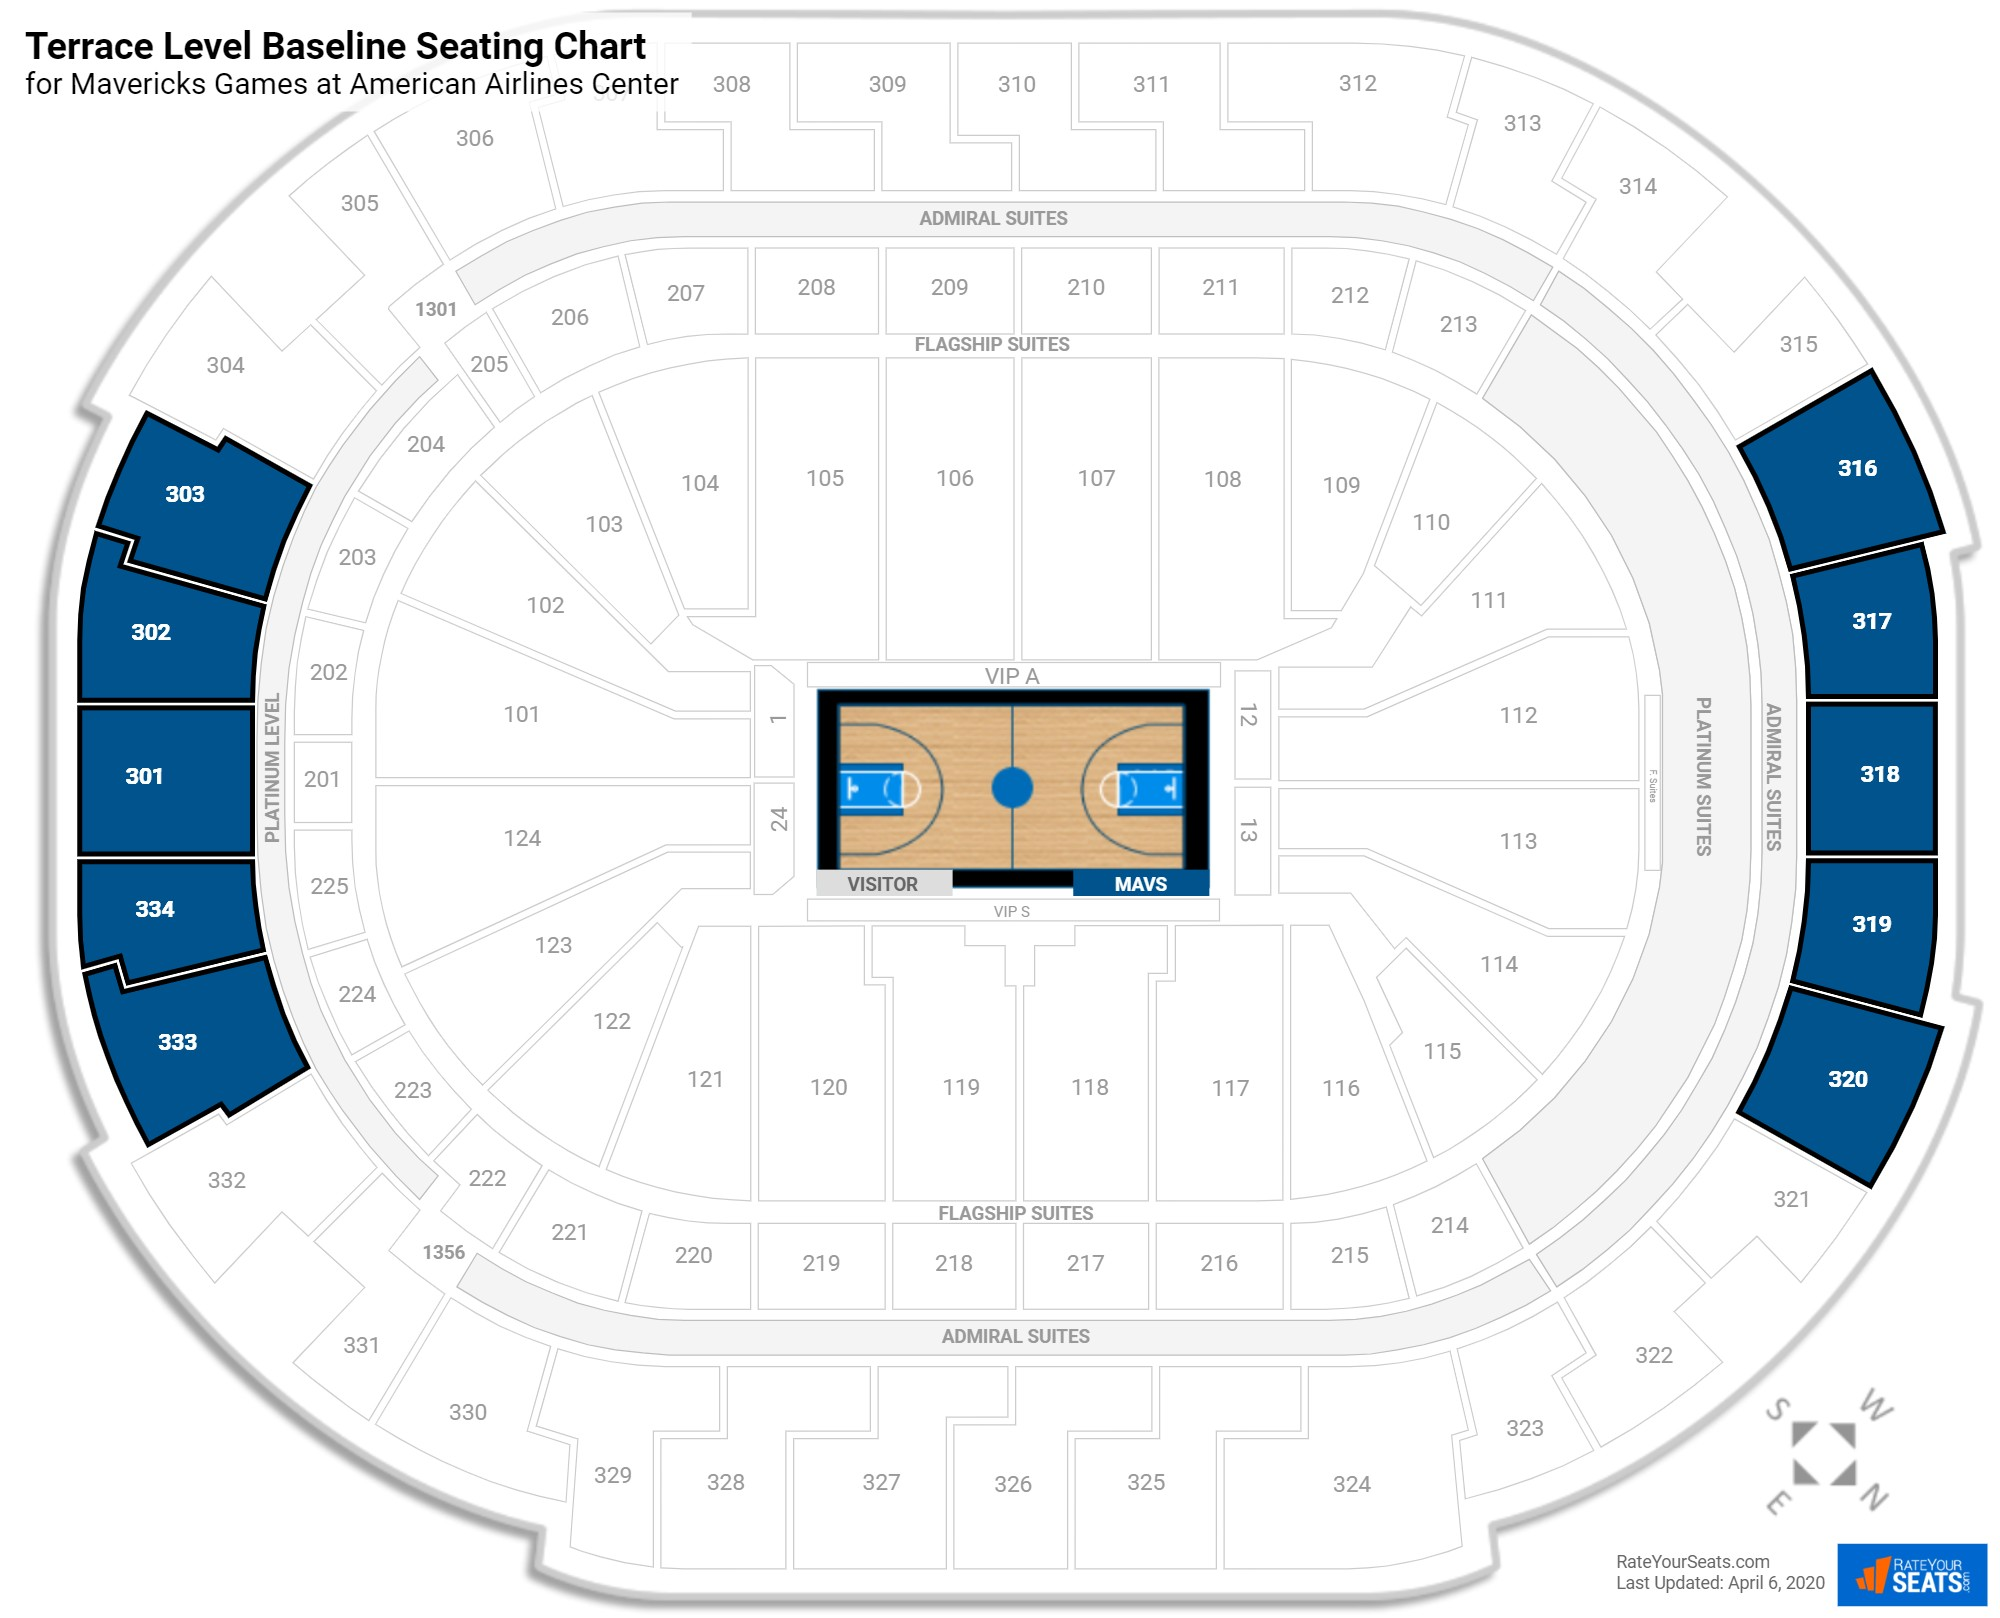 American Airlines Center Terrace Level Baseline seating chart